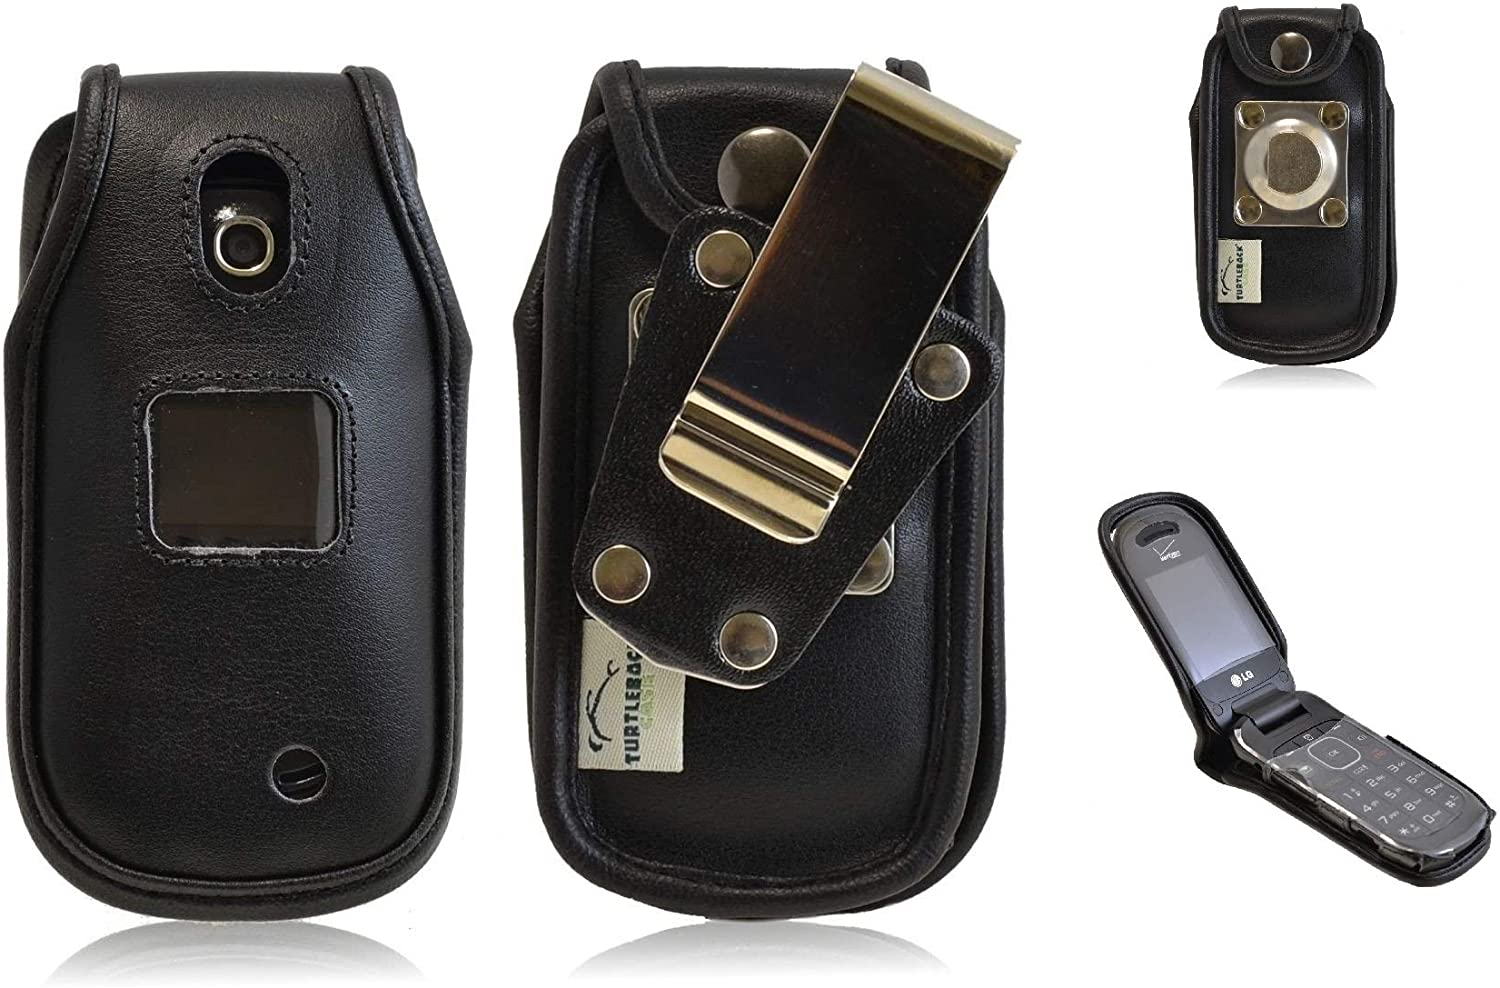 LG Revere 3 VN170 Flip Phone for Rugged Heavy Duty Leather Fitted Cover Case W/Metal Clip